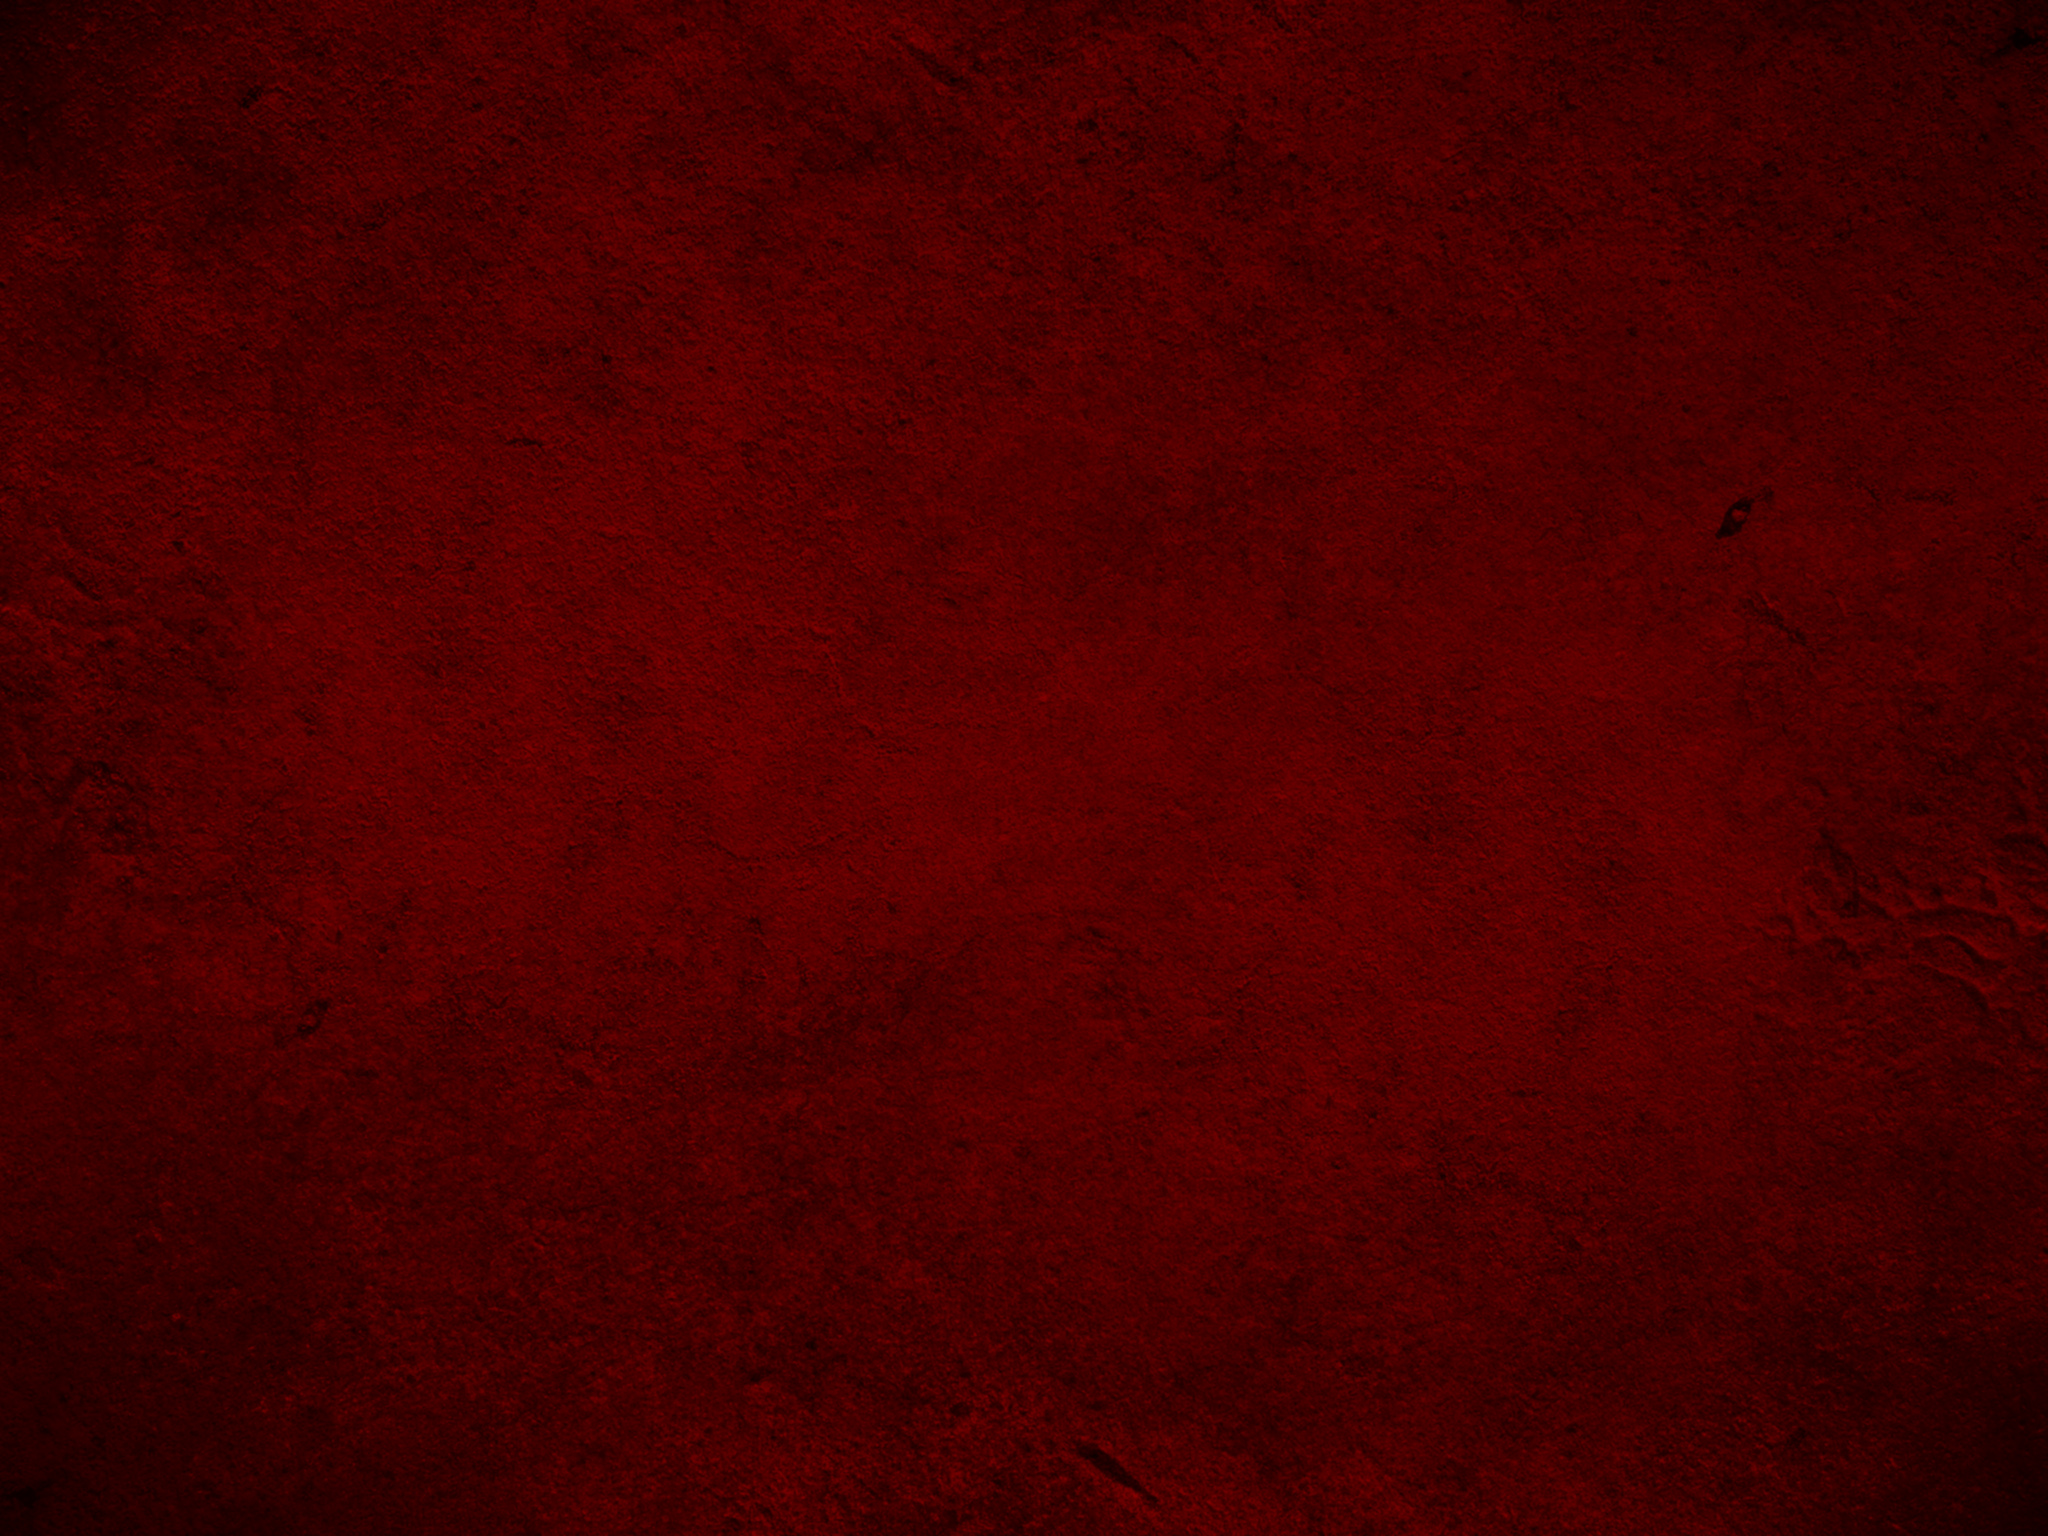 red textured backgrounds - photo #5